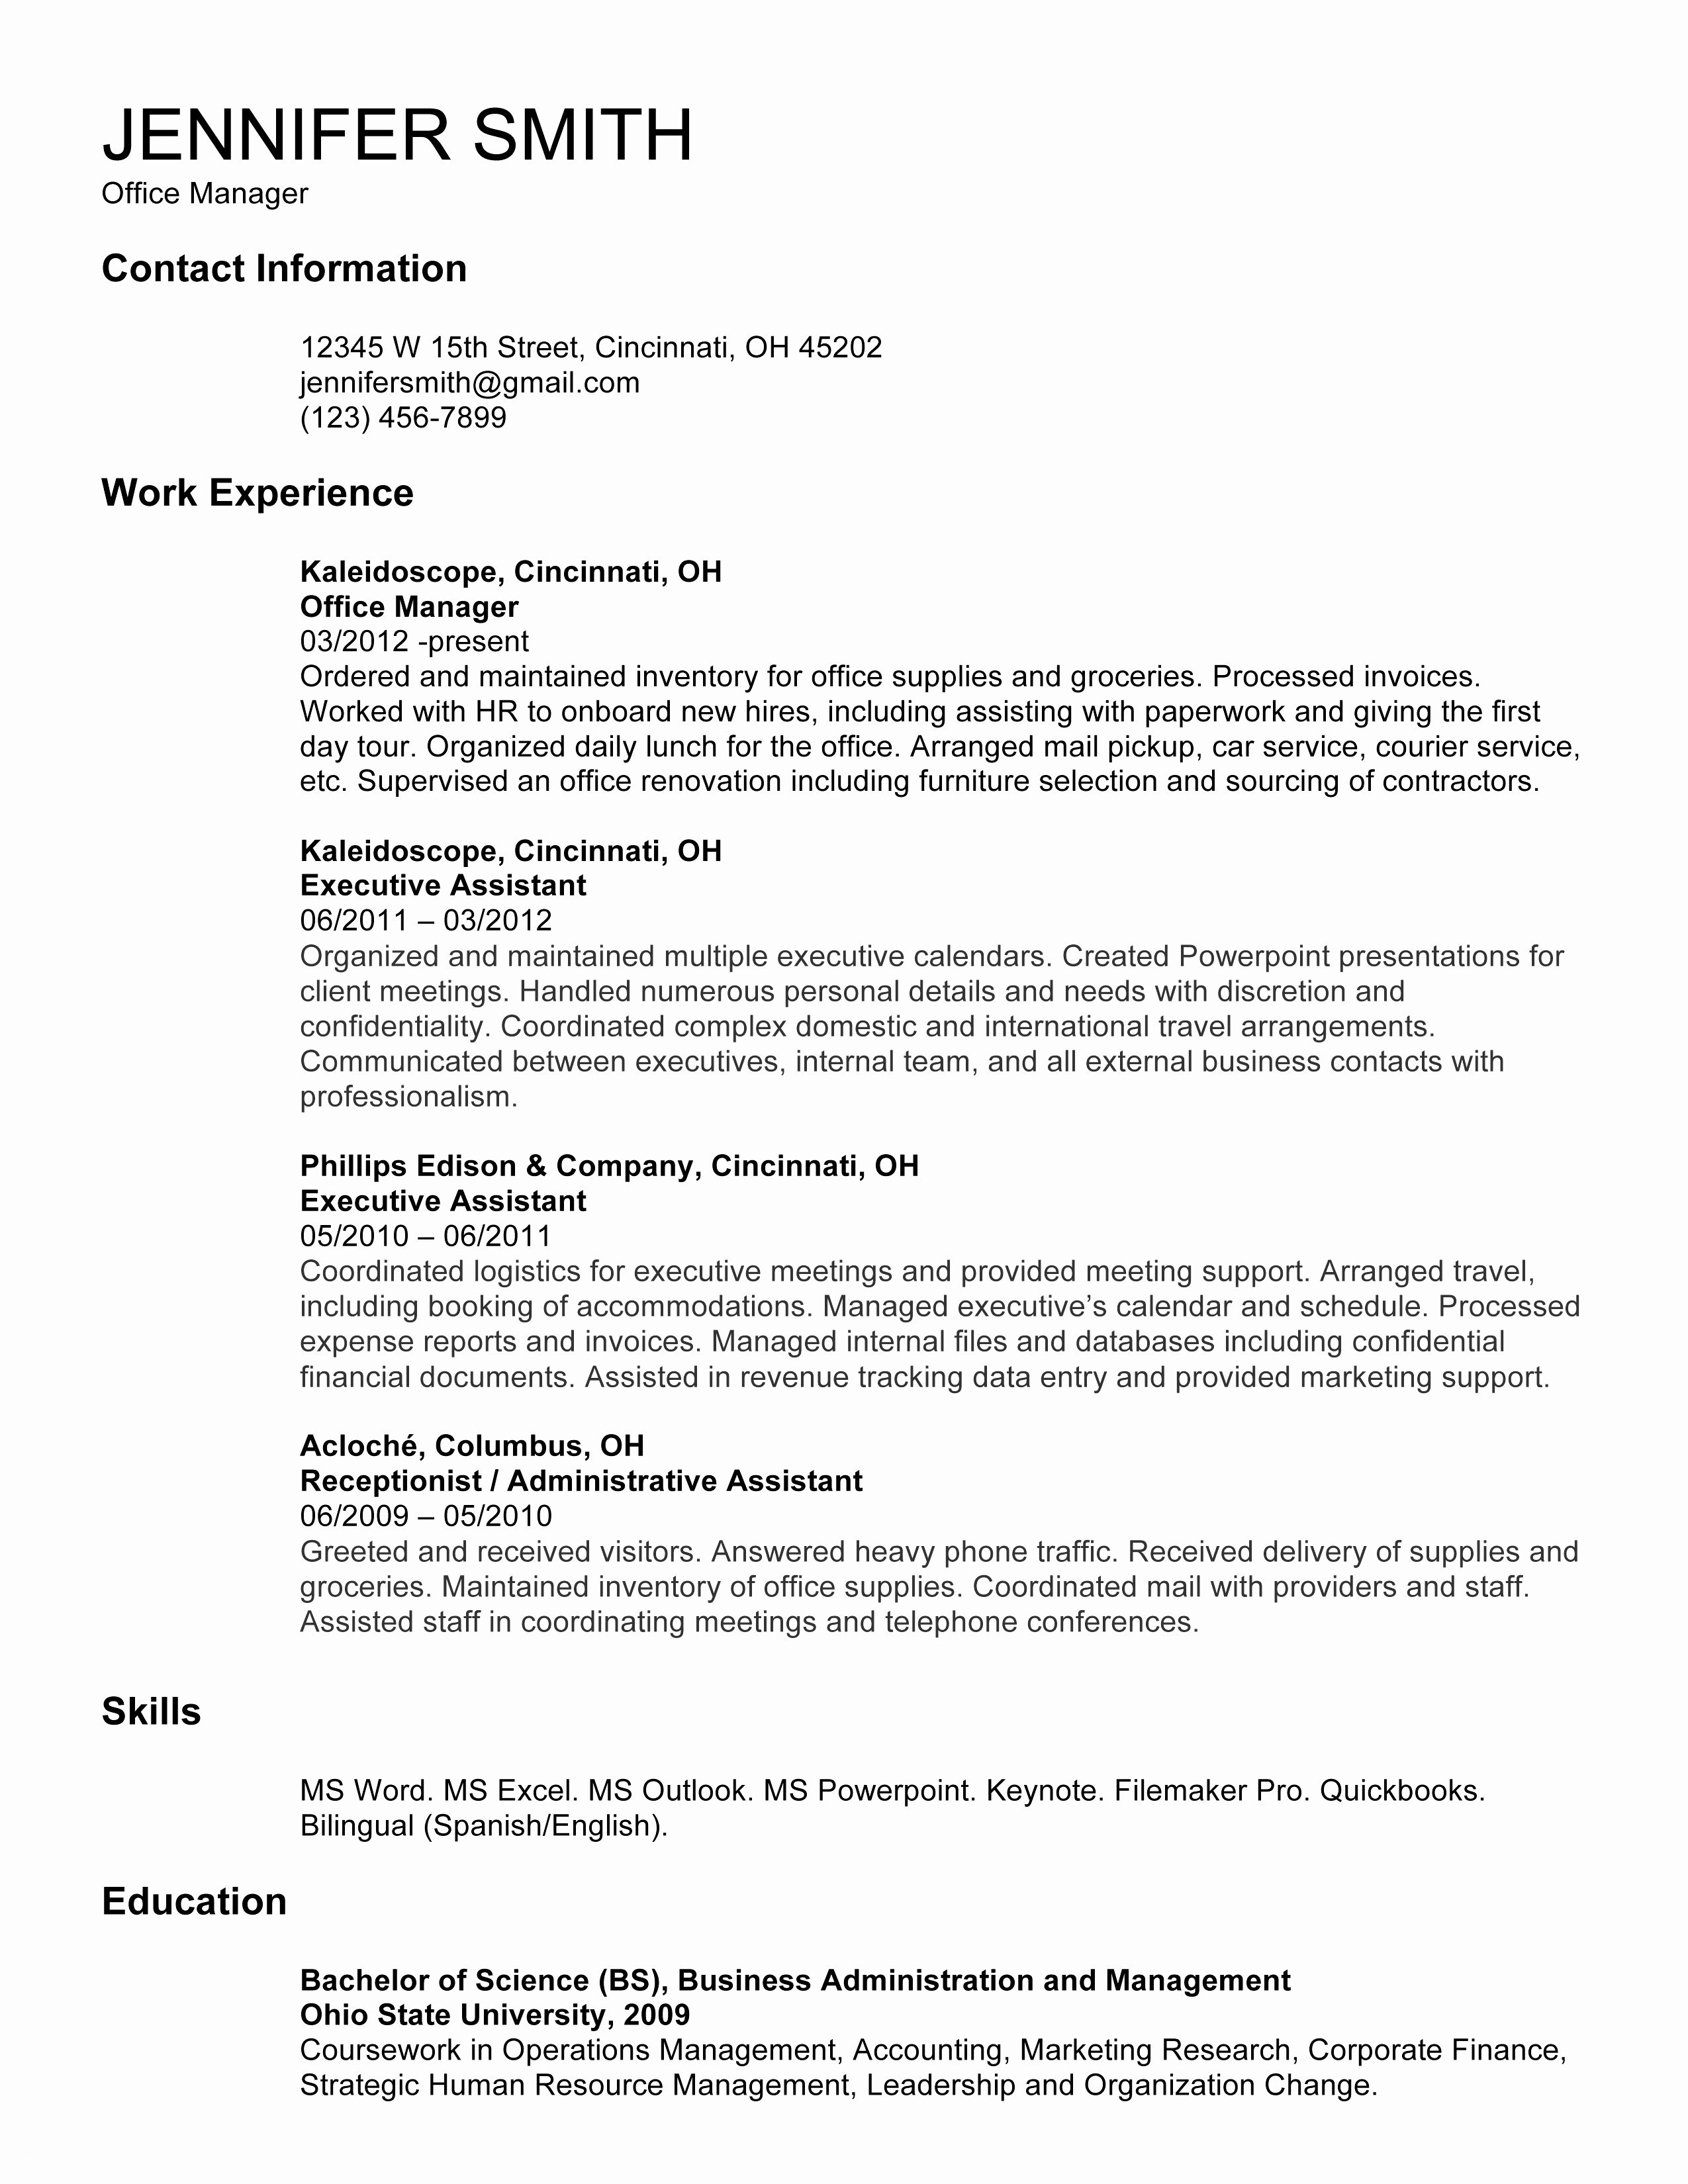 Survey Cover Letter Template - Student Satisfaction Questionnaire Template